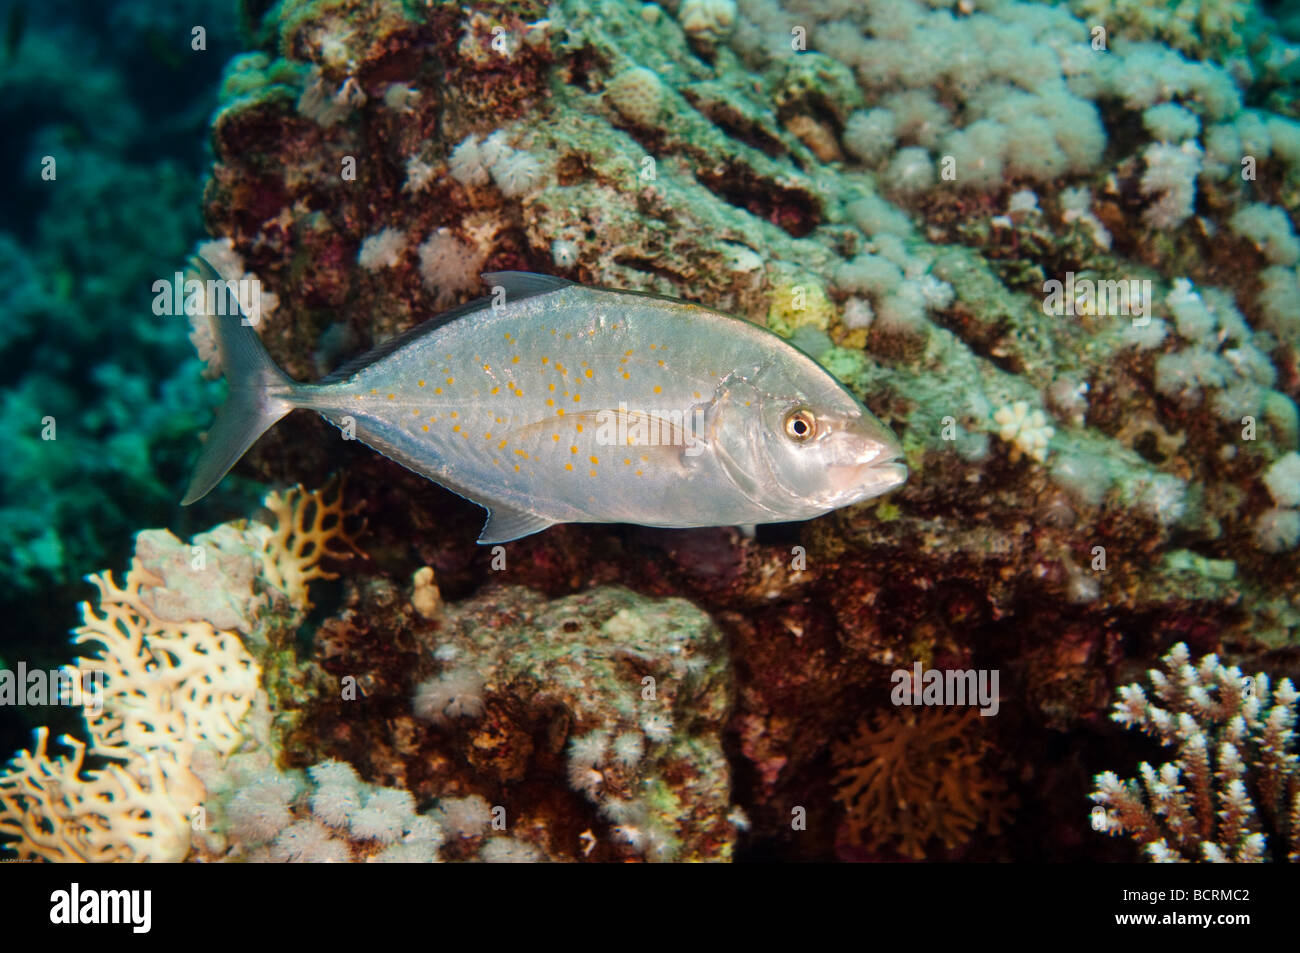 Photographic study of a Blacktip Trevally near Ras Mohammed, Red Sea Egypt. - Stock Image